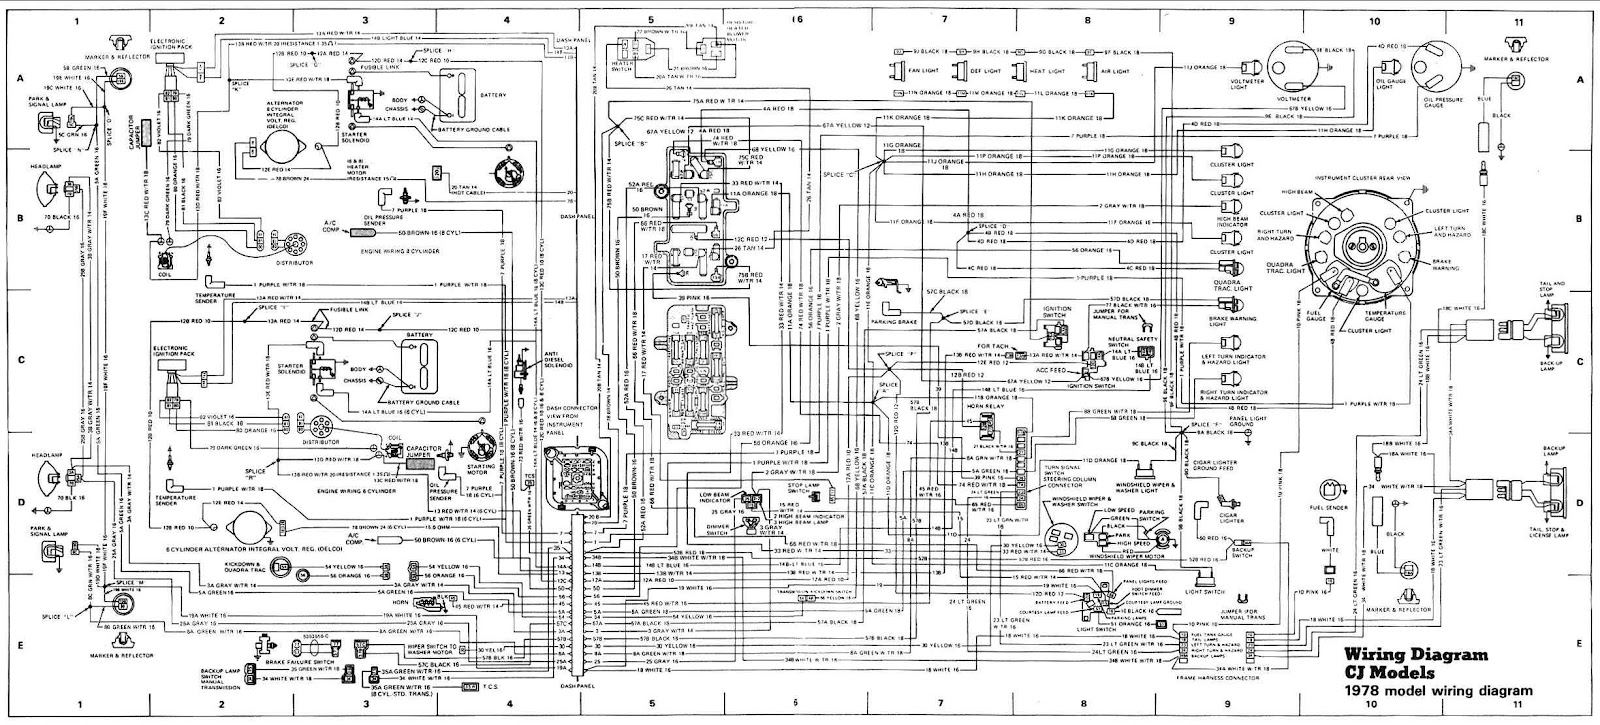 1978 jeep cj5 wiring diagram free download wiring diagrams on john deere 210le service manual led [ 1600 x 725 Pixel ]